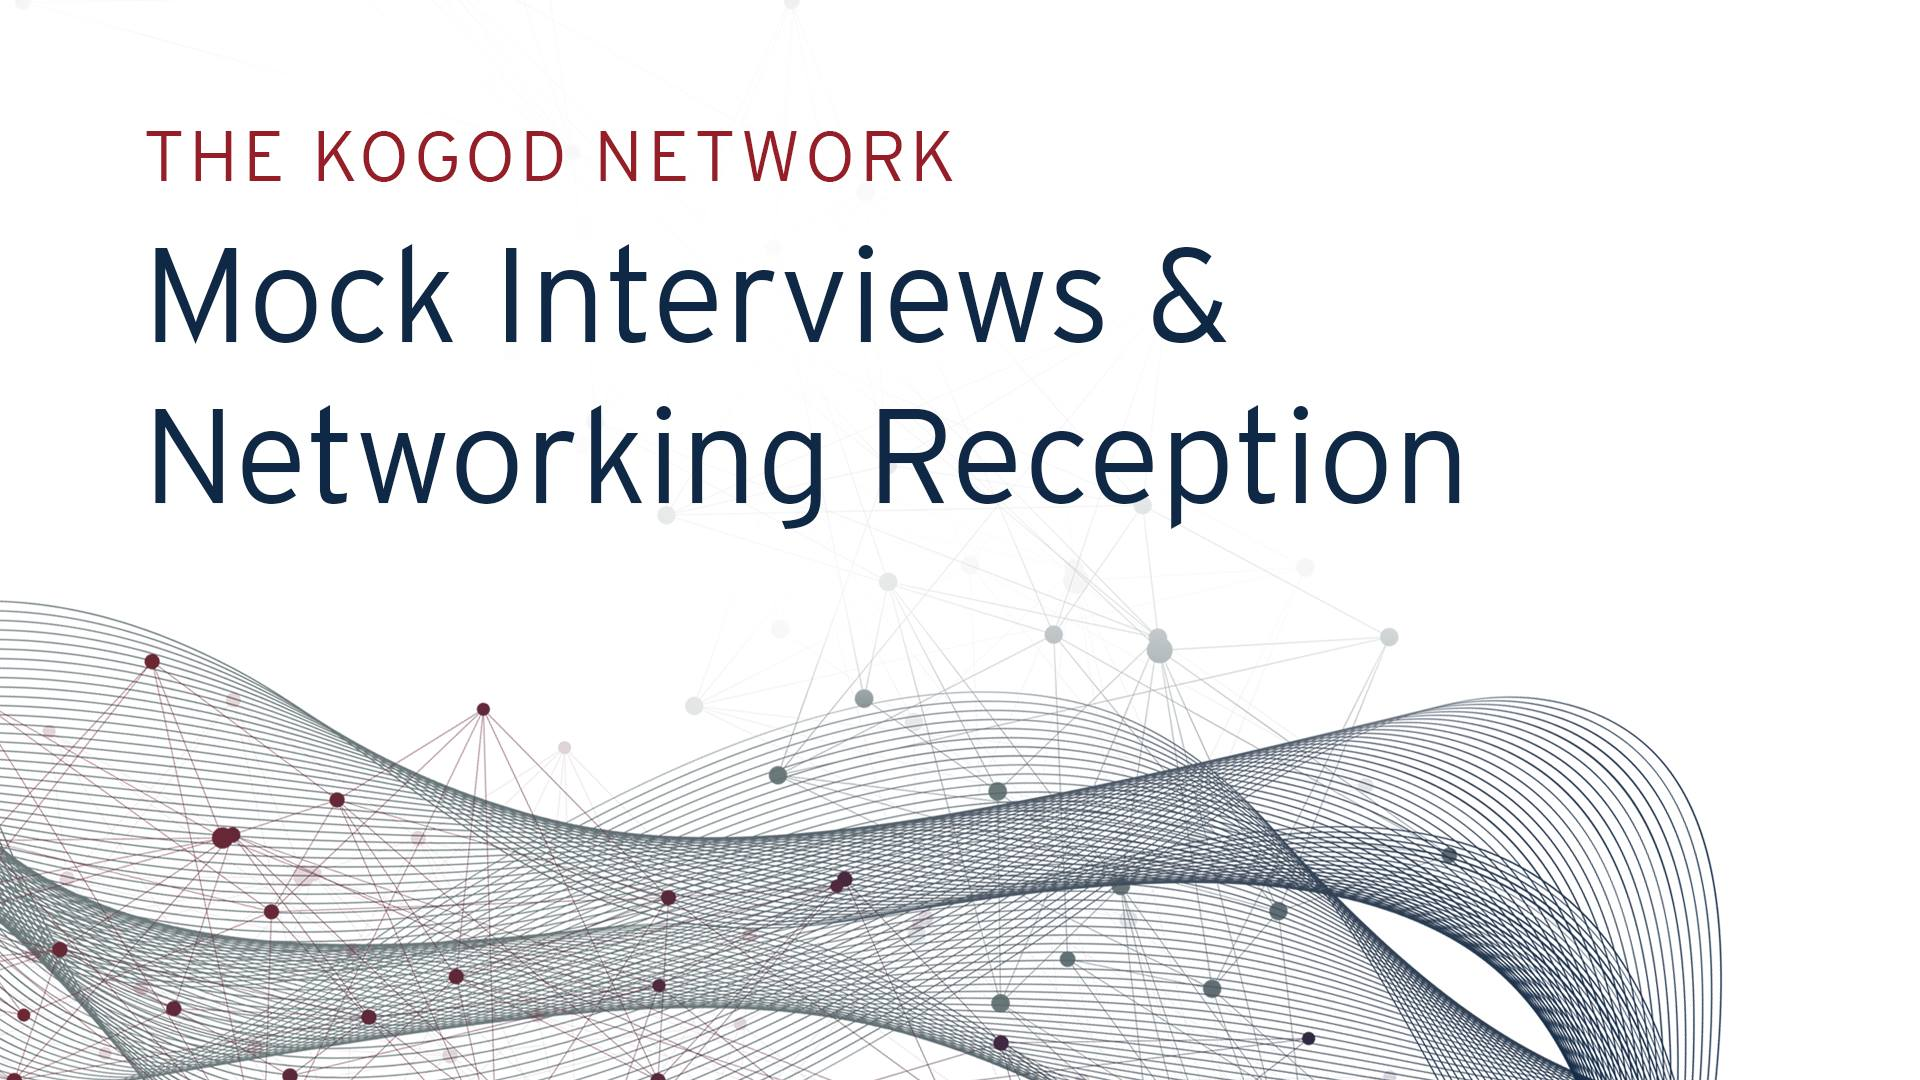 The Kogod Network: Mock Interviews & Networking Reception event cover